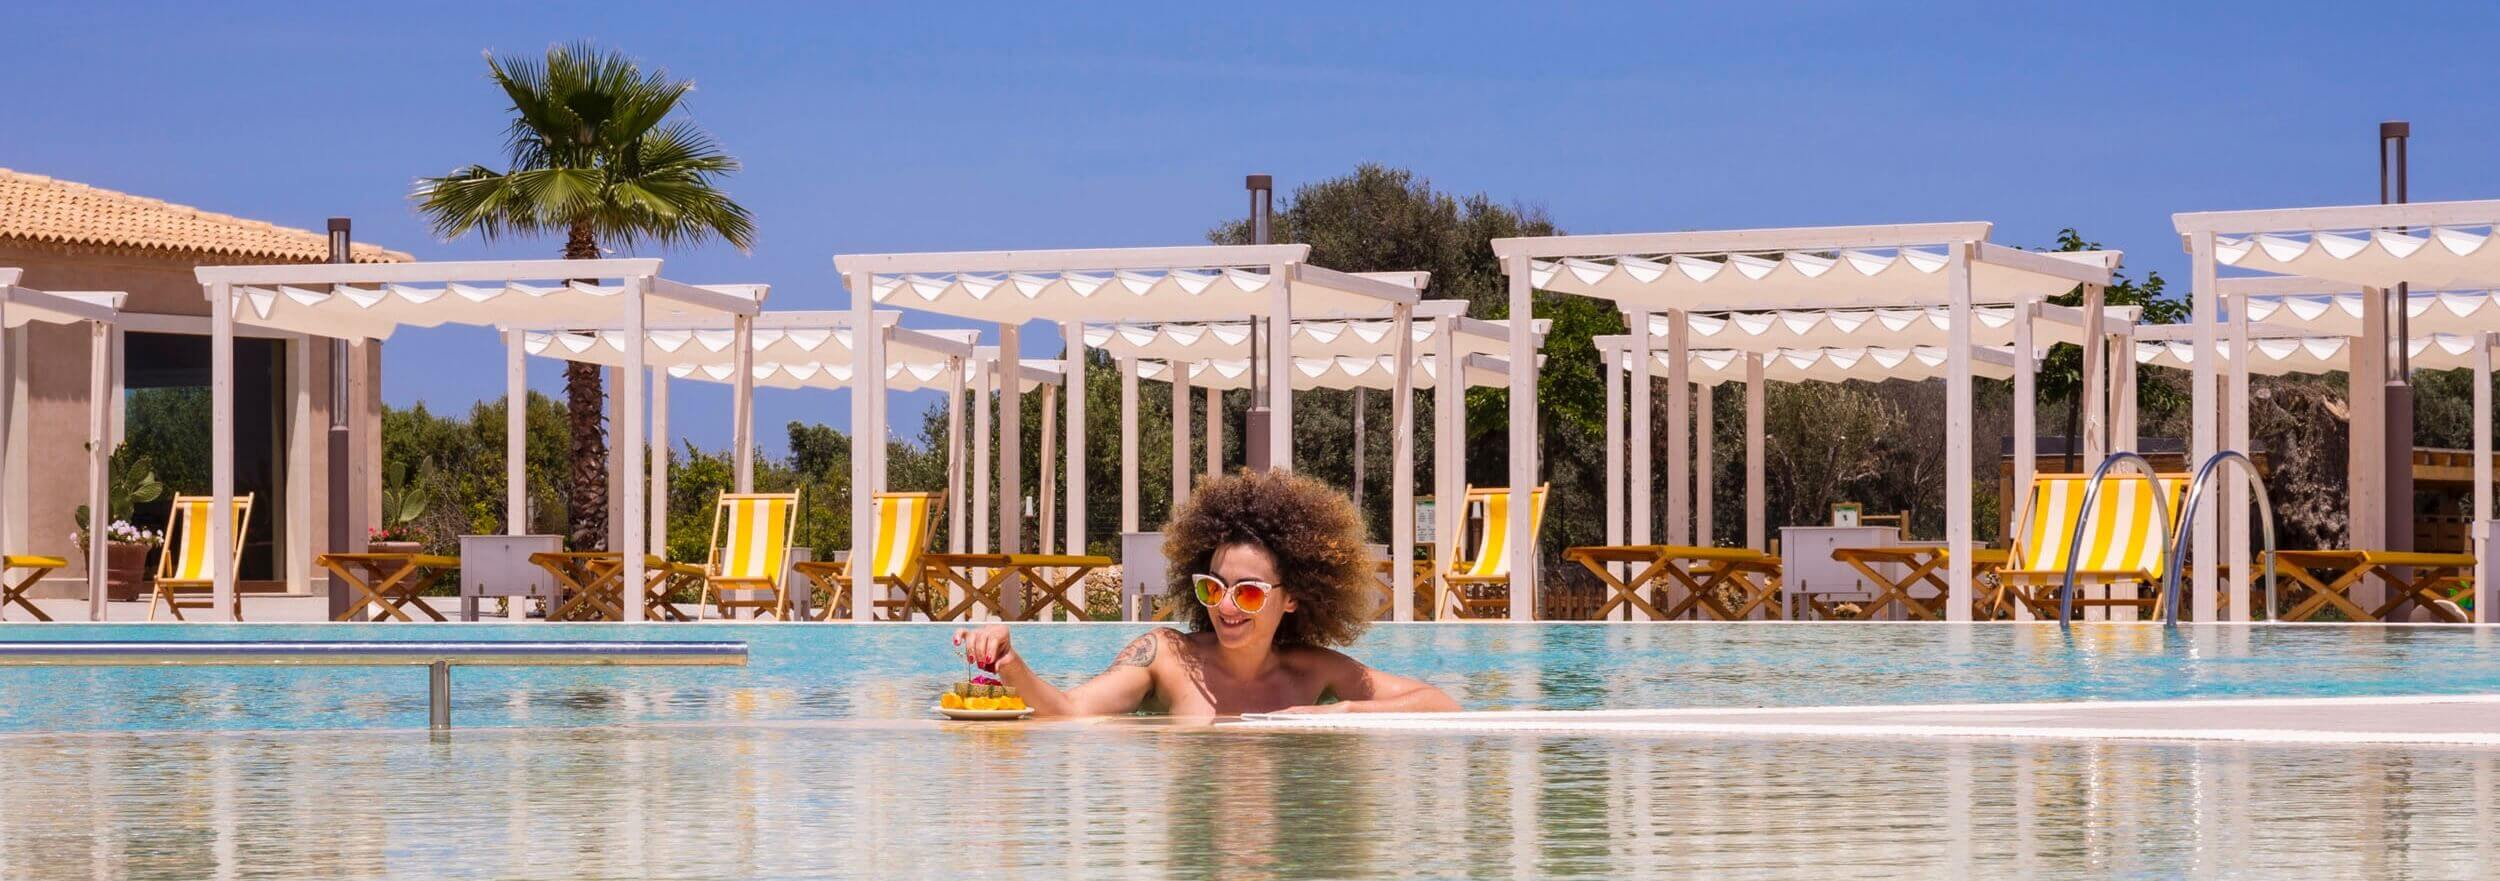 Resort hotel 4 stelle a siracusa con piscina hotel for Siracusa hotels